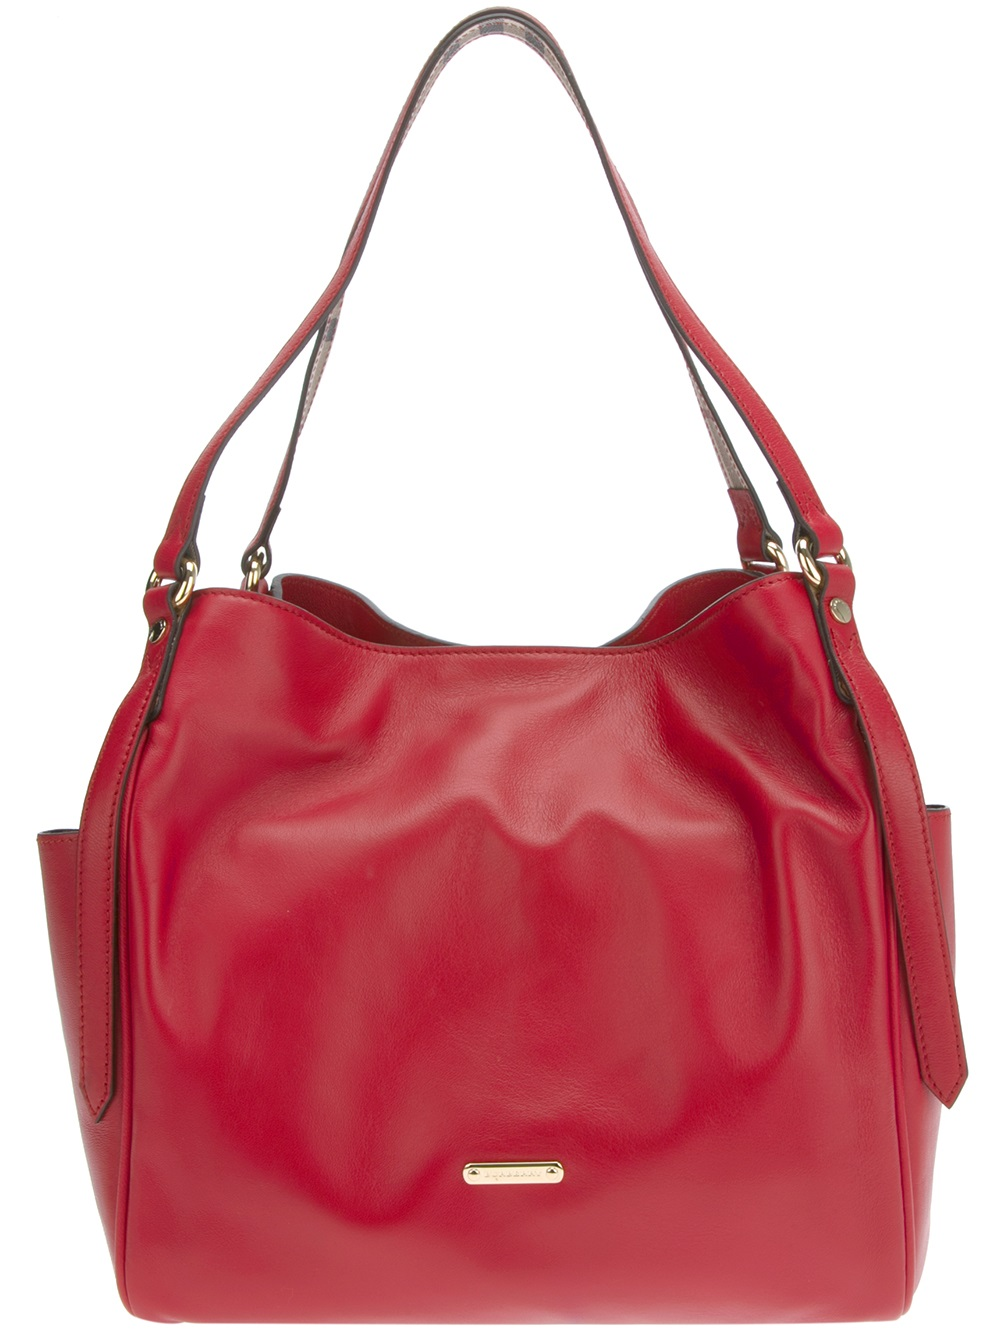 Burberry Red Purses Best Purse Image Ccdbb. Burberry Haymarket Panels  Canterbury Small Tote Bag Military Red d6cd34ee87